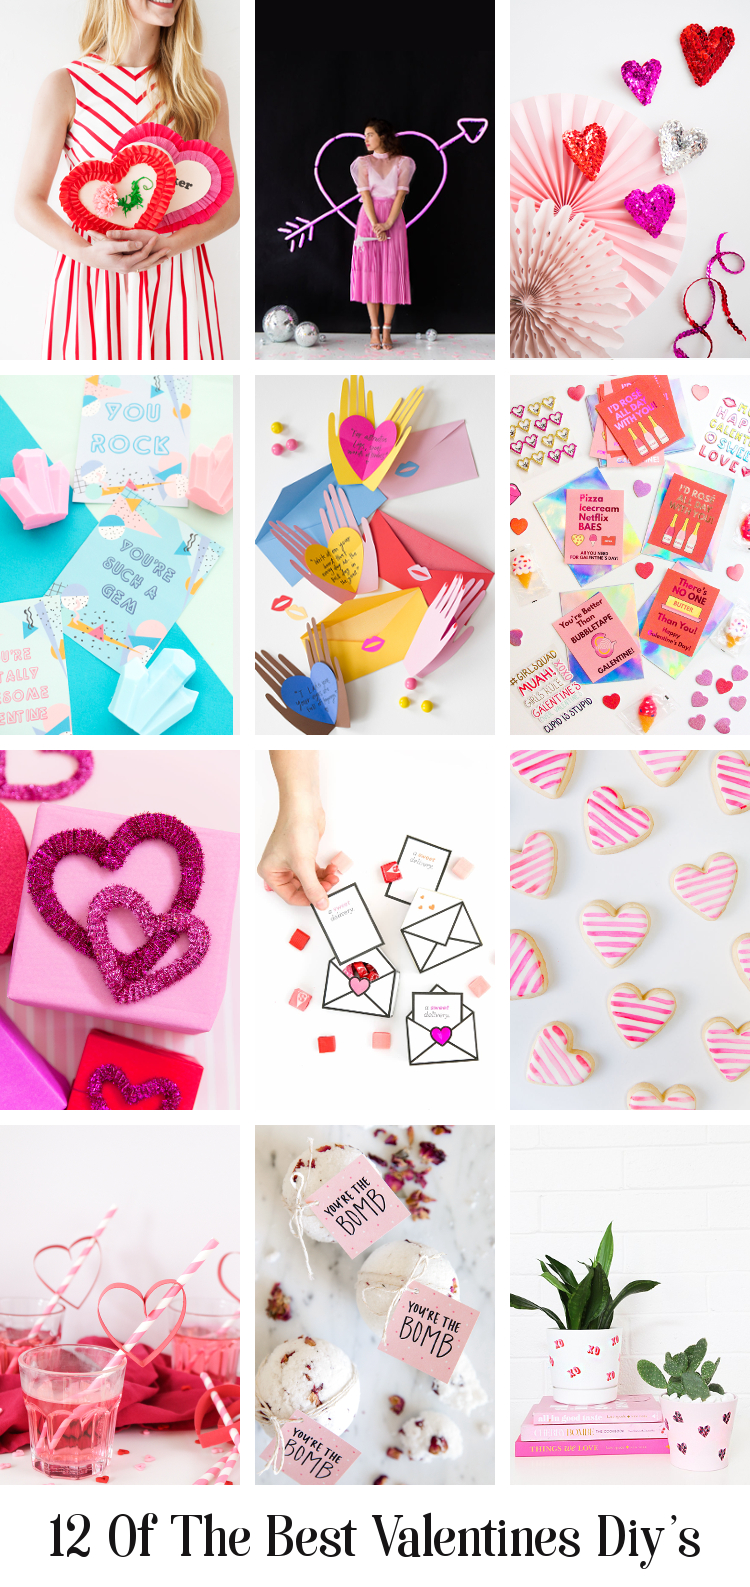 12 OF THE BEST VALENTINE'S DAY DIY'S.